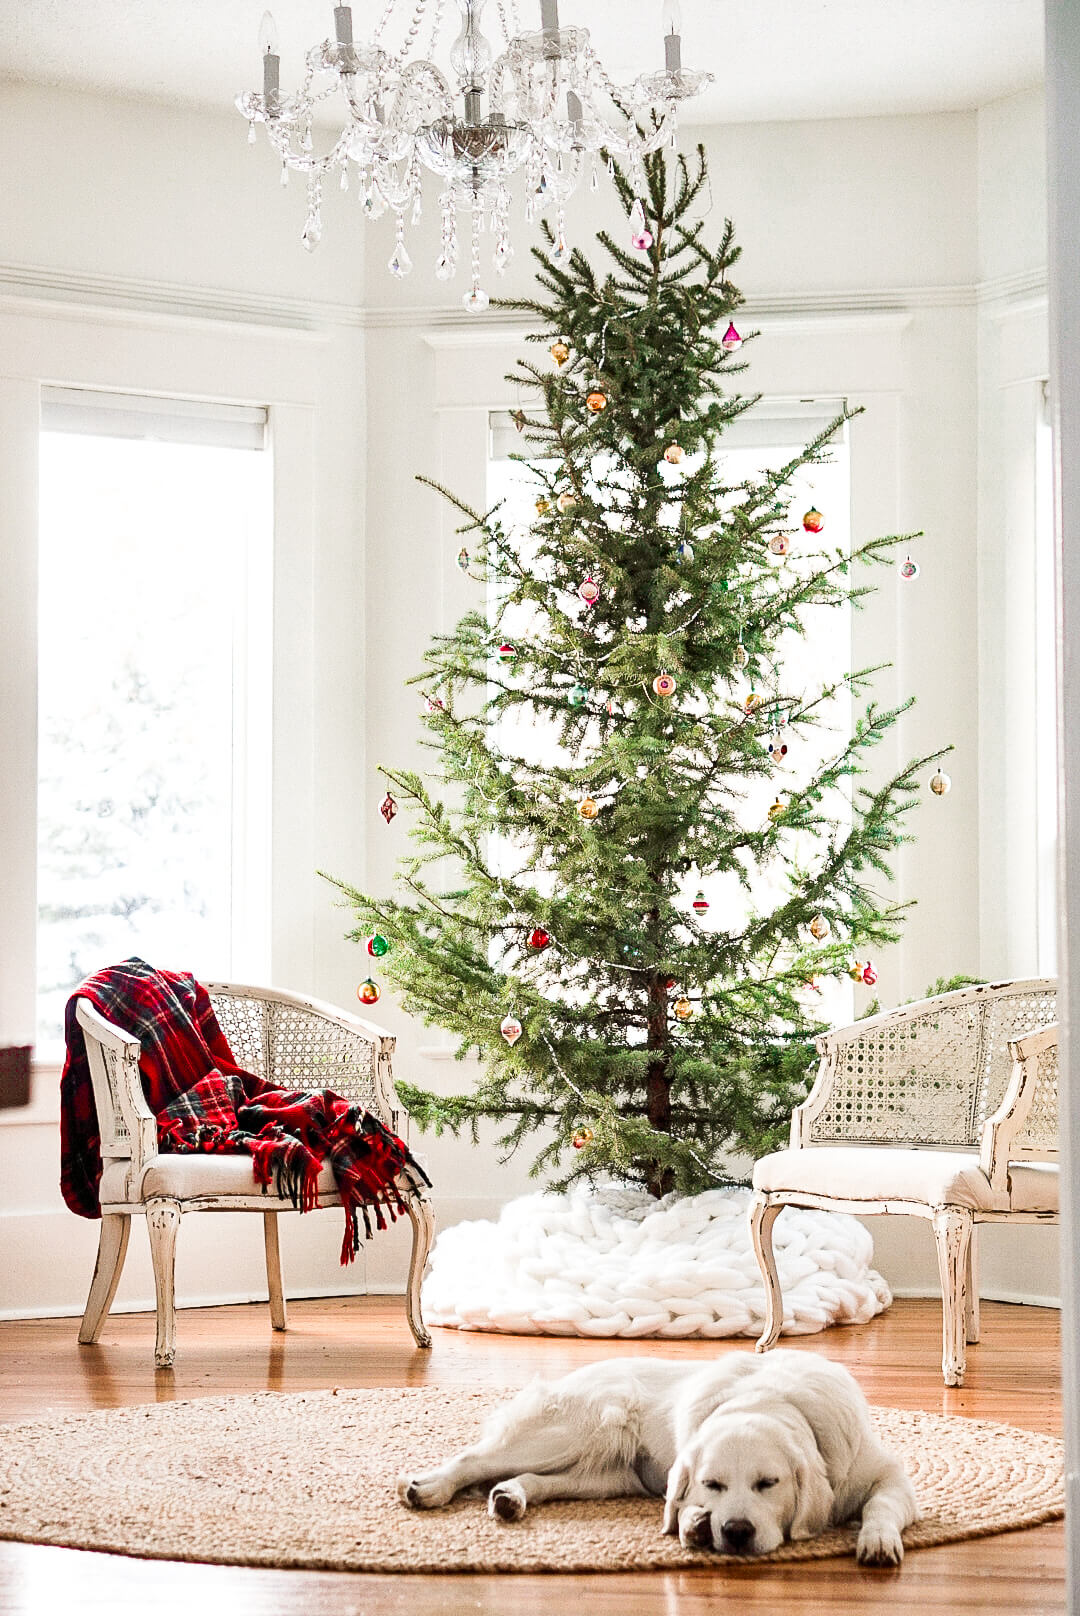 15 Sparse Christmas Trees - love this beautiful tree minimally decorated in lights and vintage ornaments kellyelko.com #christmas #christmastree #sparsechristmastree #vintagechristmas #christmasdecor #christmasedecorating #christmasdecoratingideas #farmhousechristmas #christmasornaments #neutralchristmas #silvertip #kellyelko